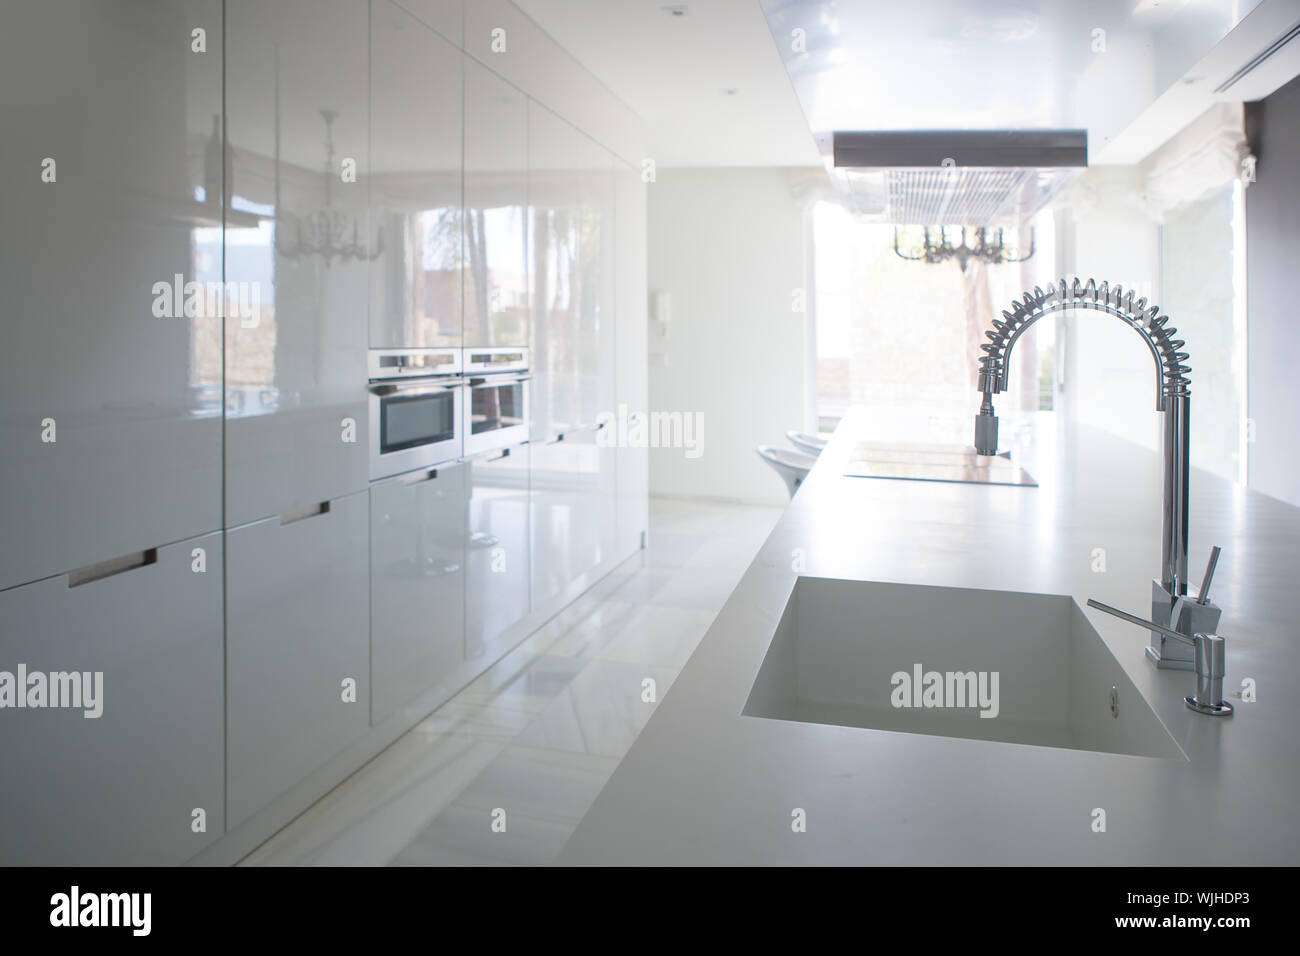 https www alamy com modern white kitchen perspective with integrated bench sink and spring faucet image269603323 html